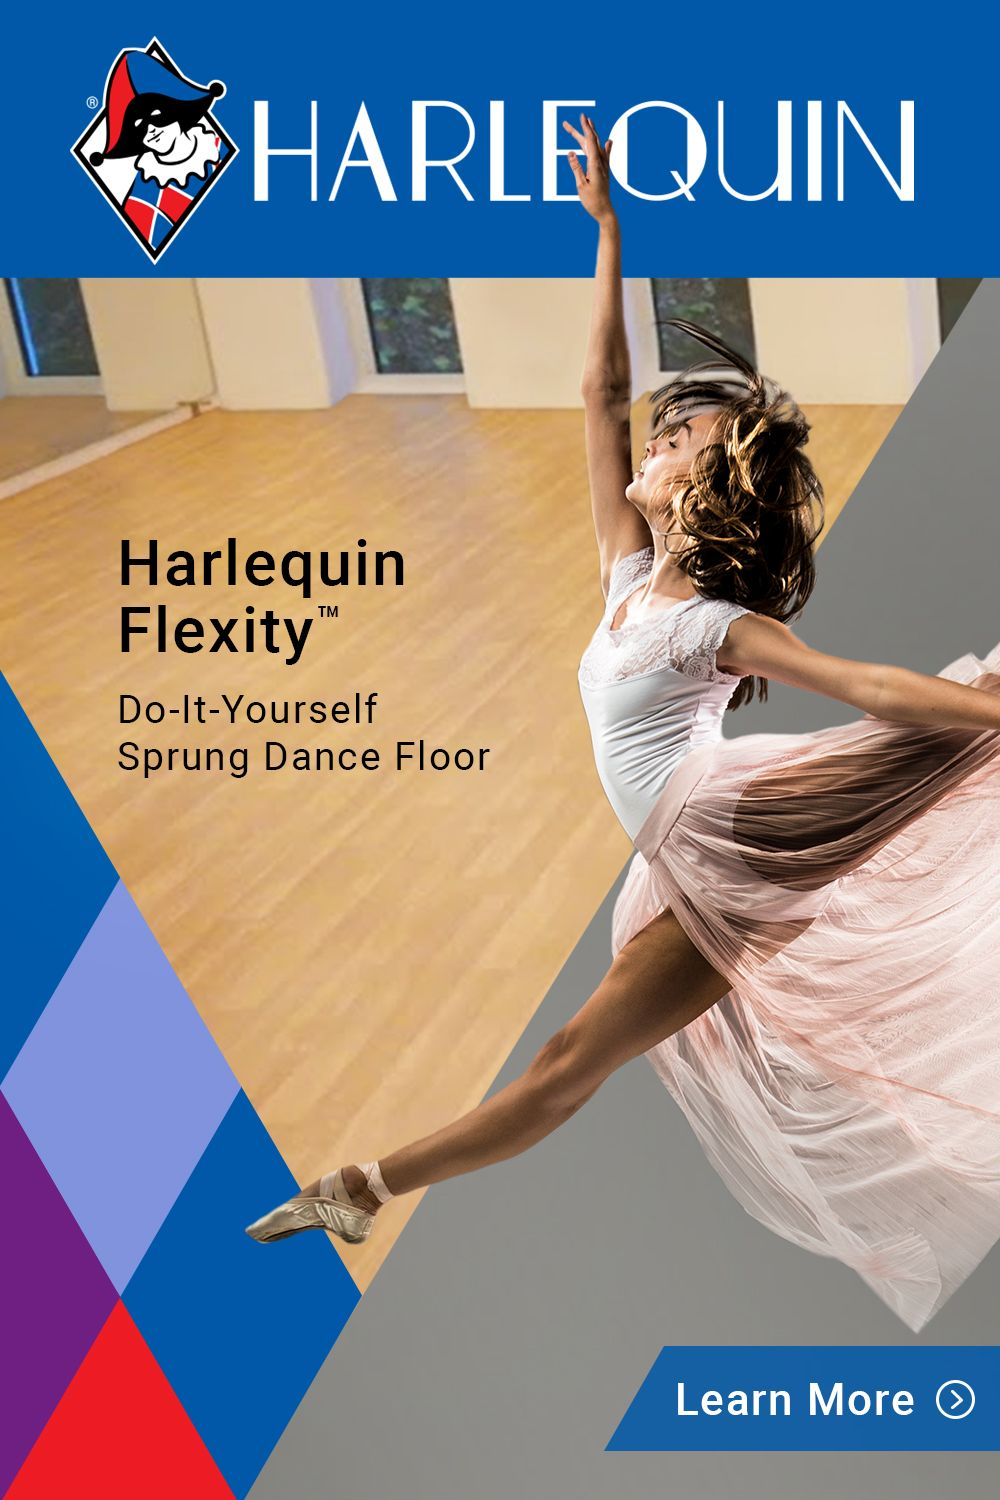 Harlequin Flexity™ is a cost-effective, self-install sprung floor panel system, designed for permanent or semi-permanent installation.